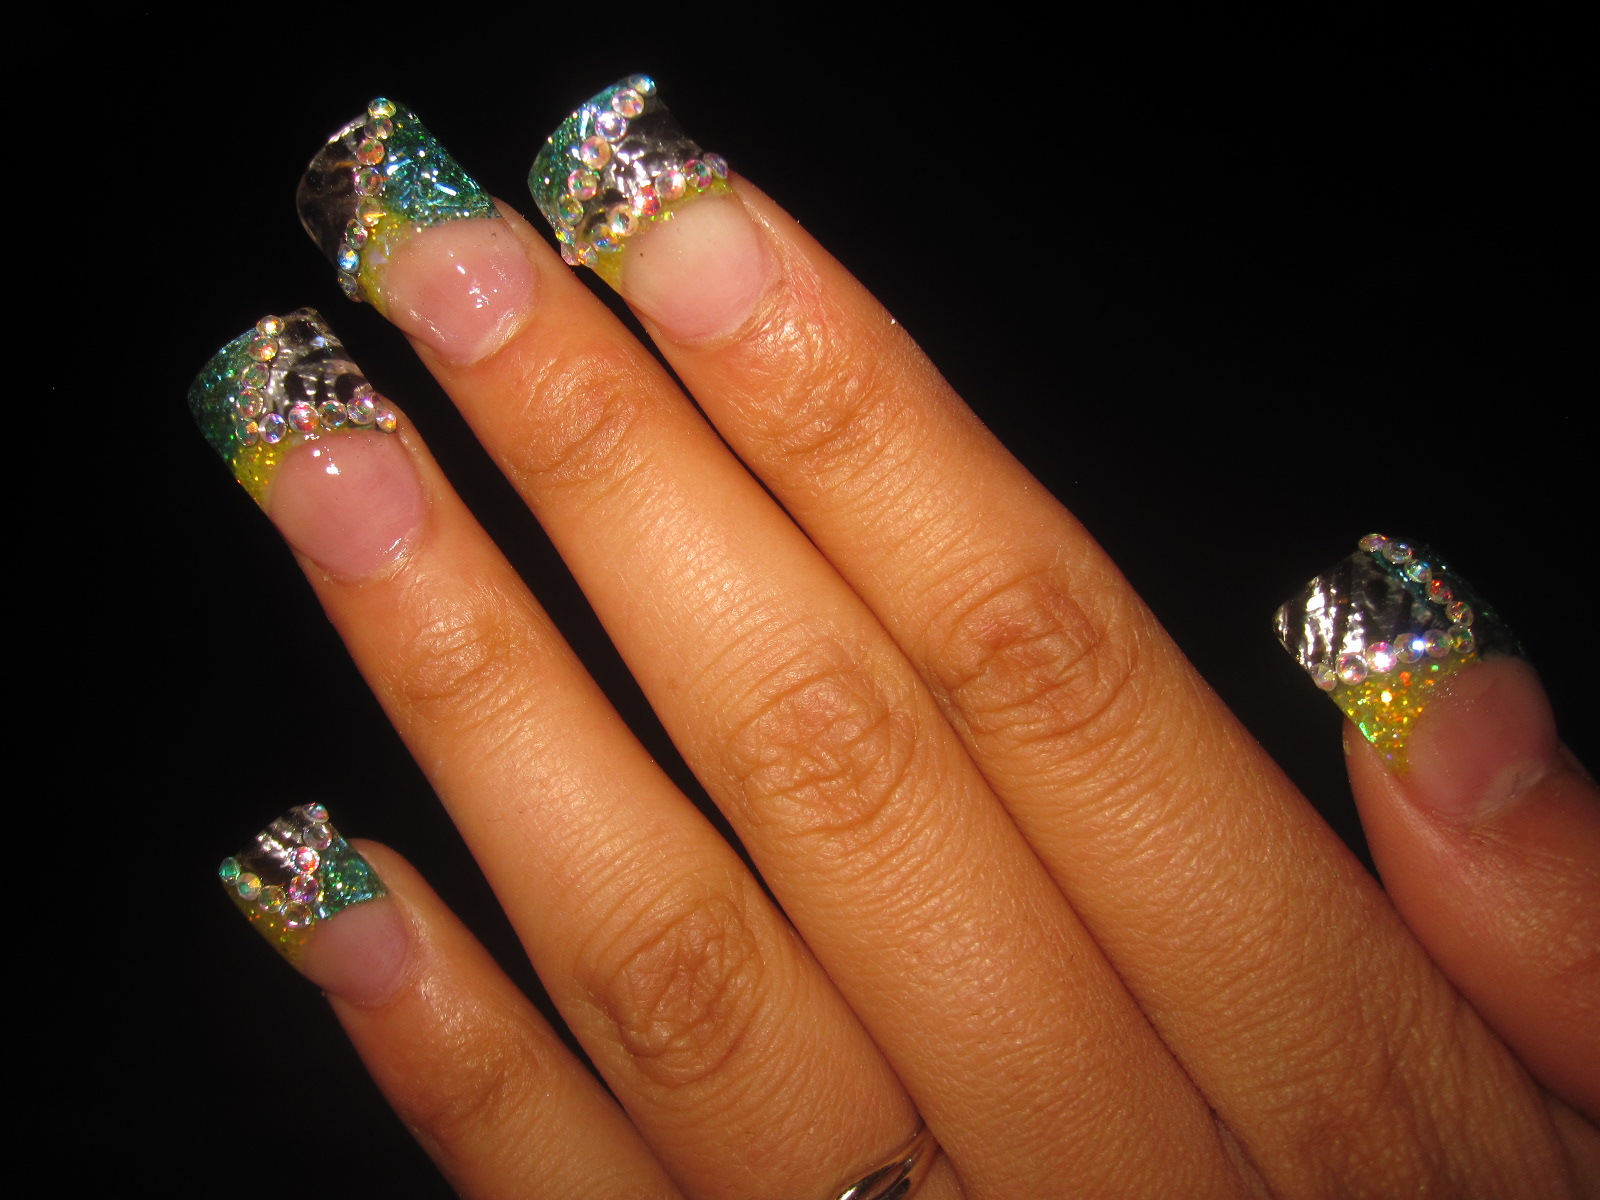 Cynthiaviera Nails Estilo Sinaloa Colores Salvajes Wild Colors